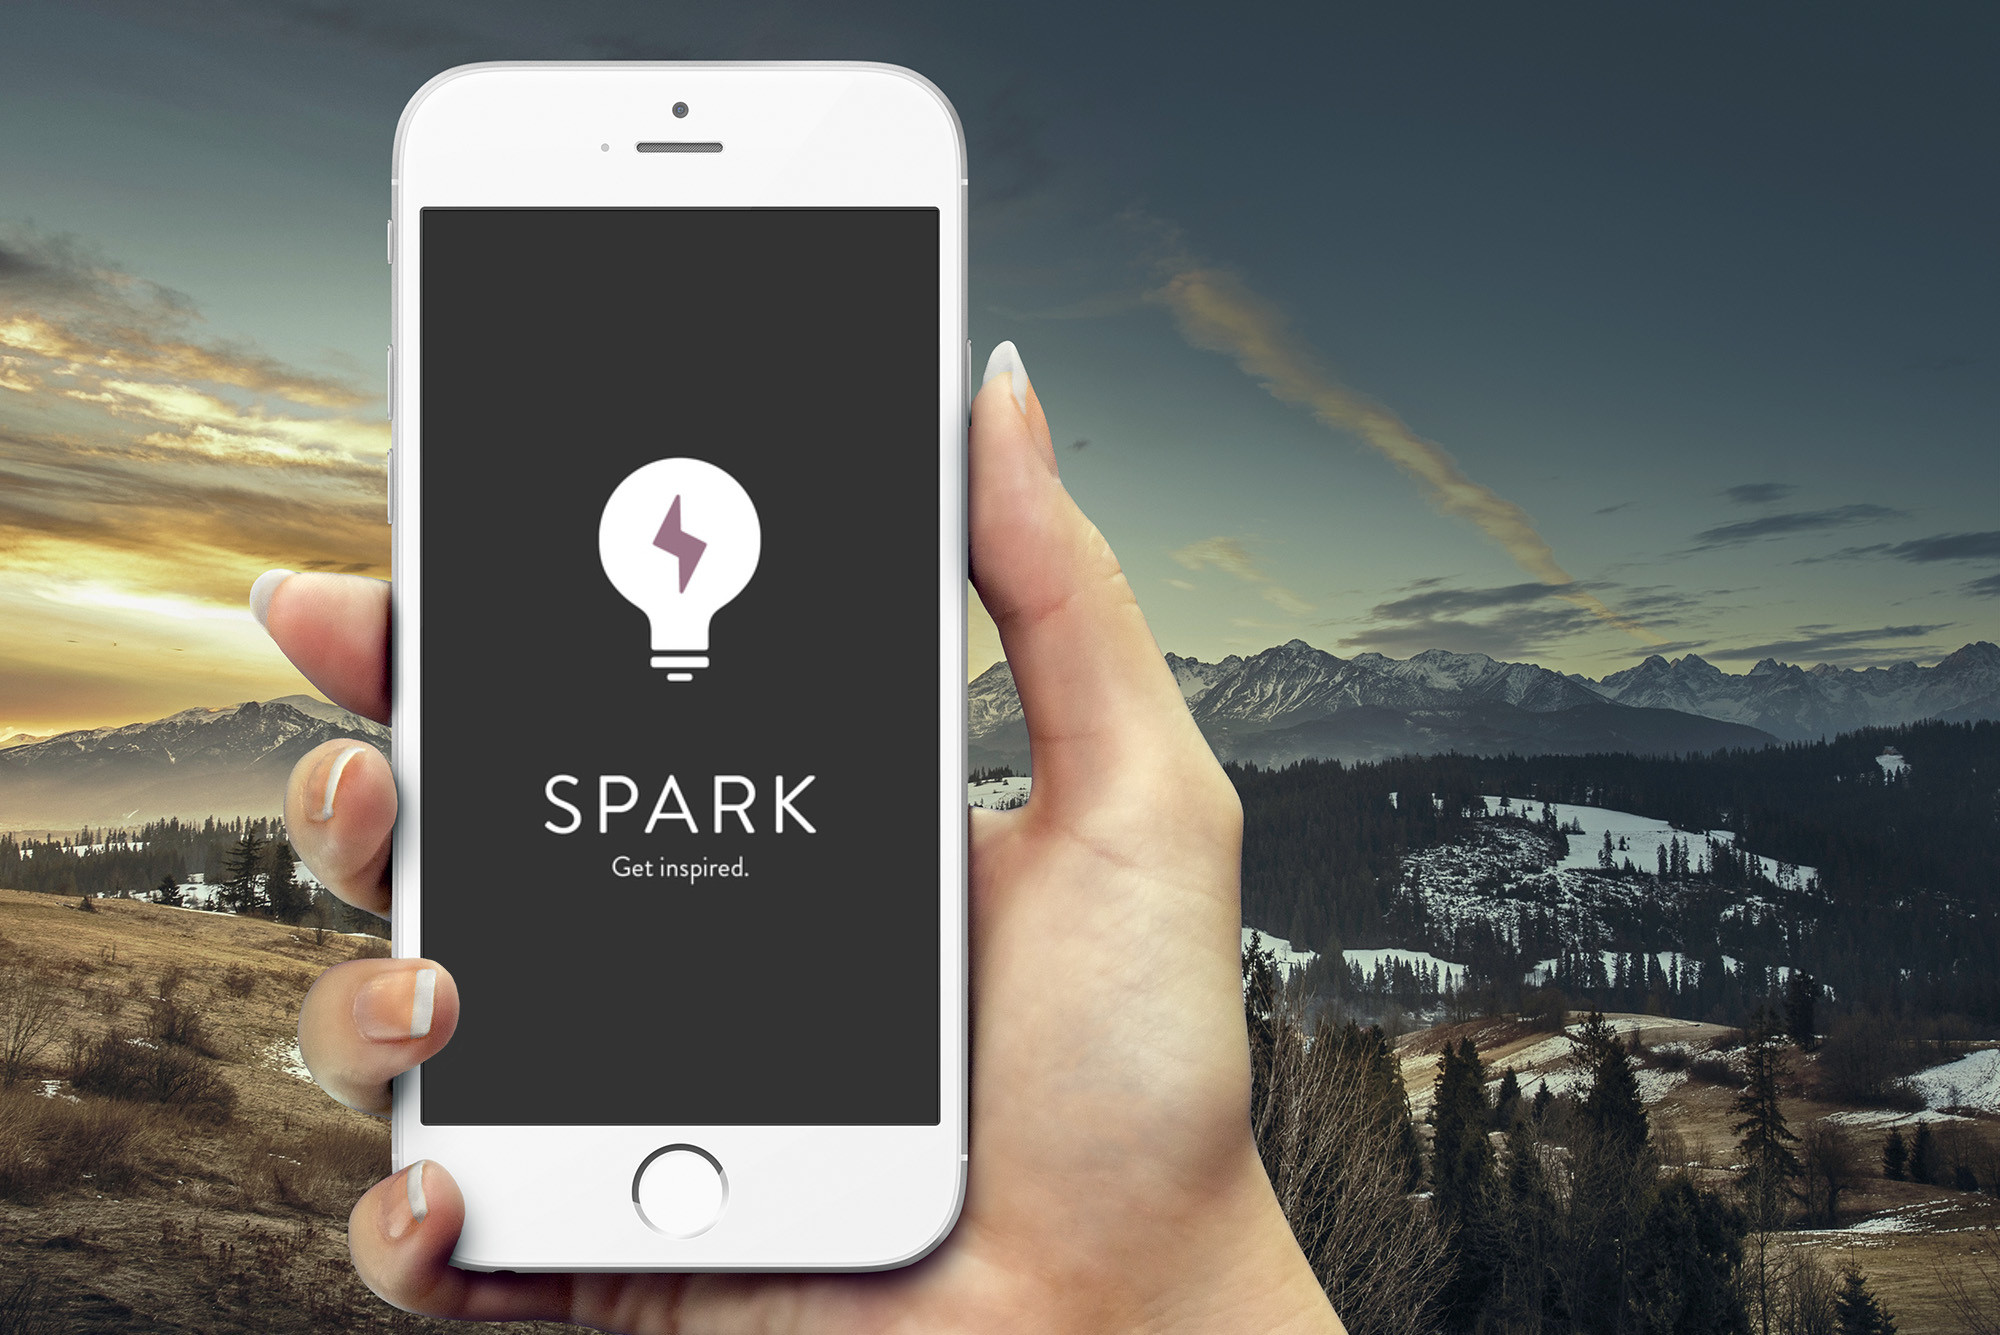 When you need inspiration, a new app can Spark it